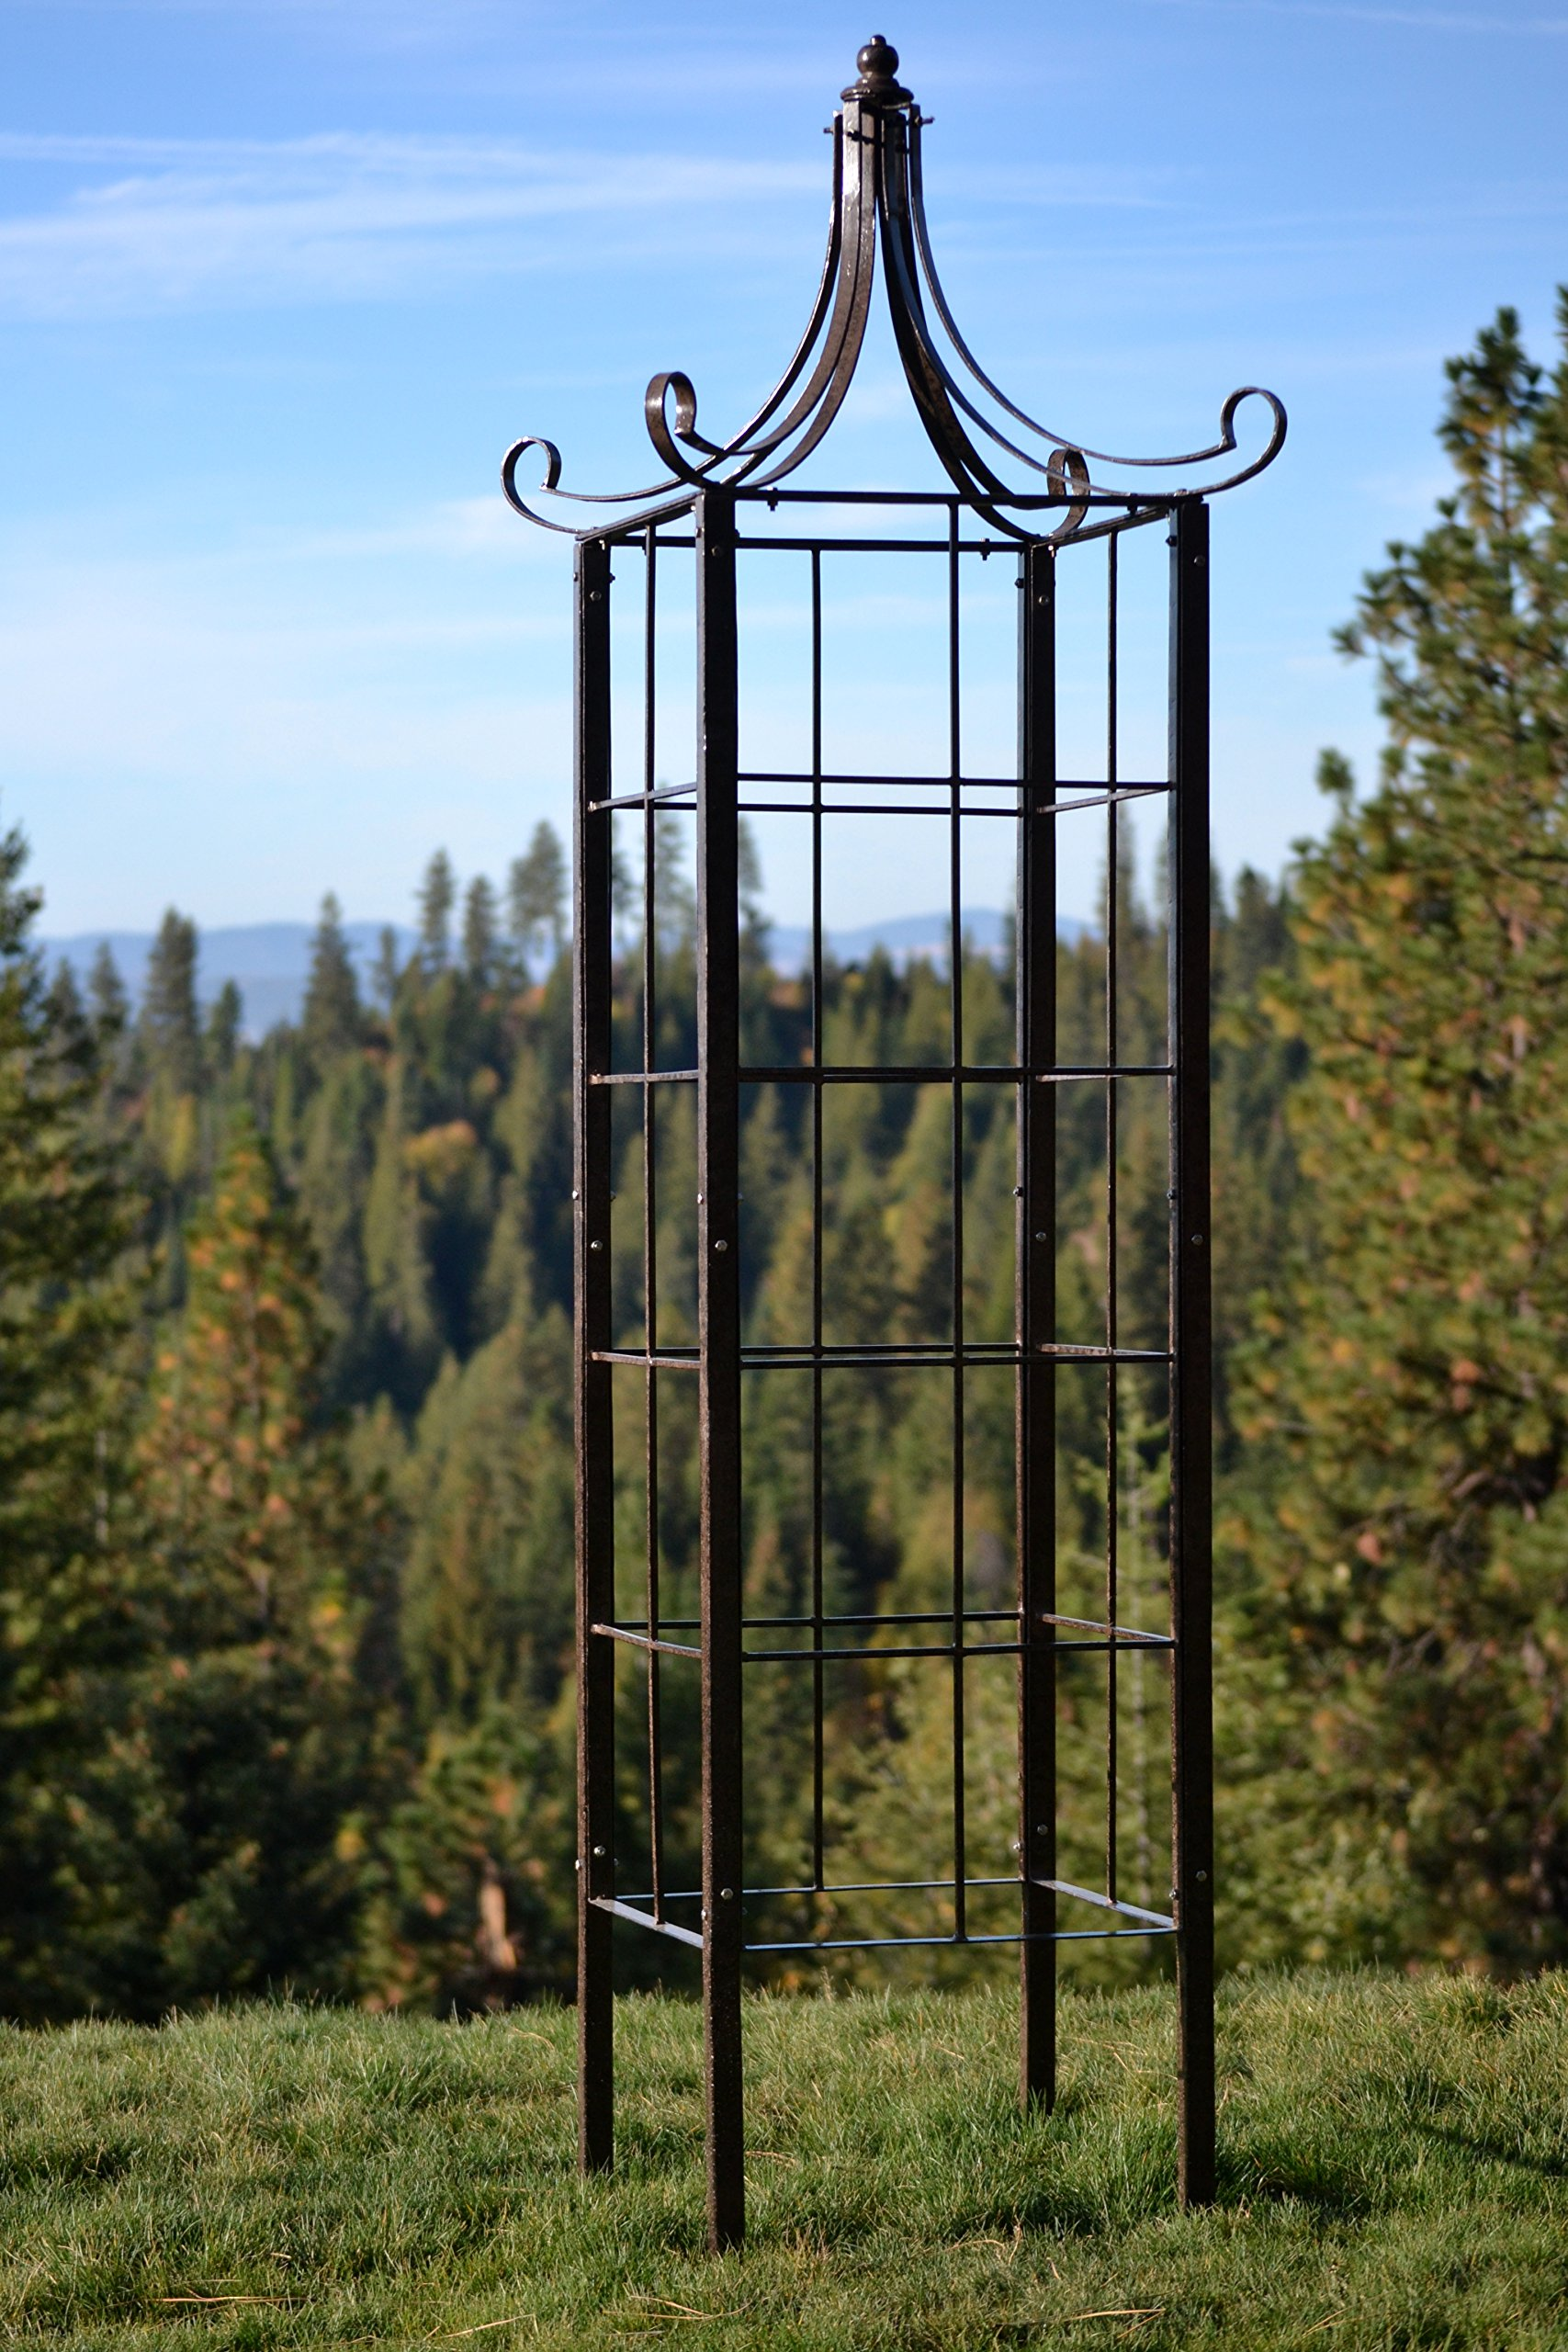 H Potter Trellis Wrought Iron Ornamental Large Garden Obelisk for Climbing Plants by H Potter